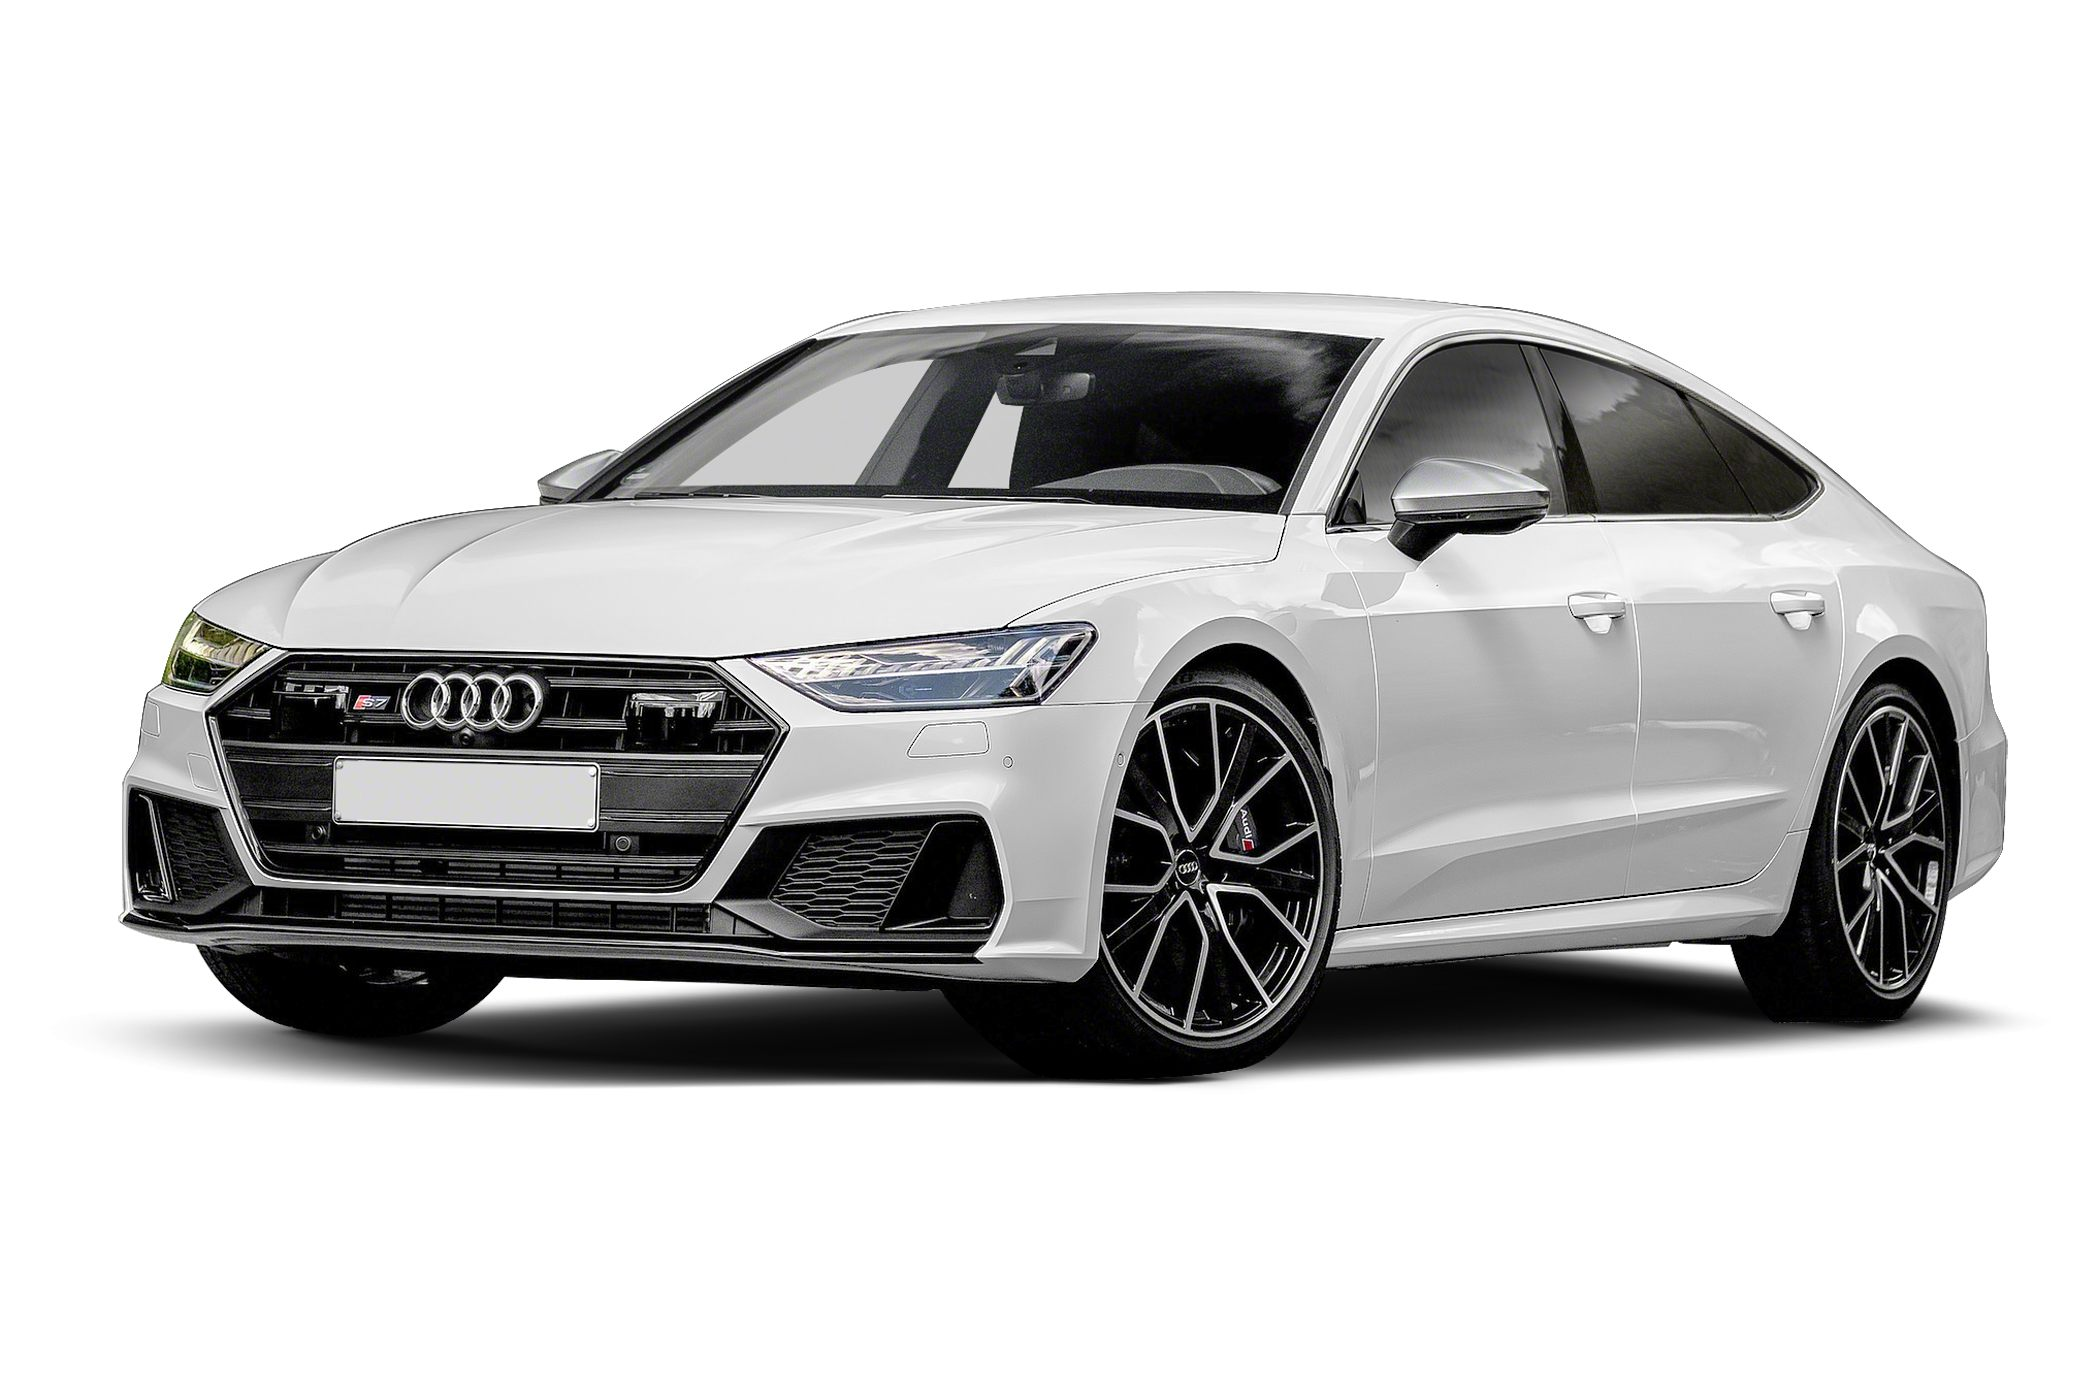 2013 audi s7 first drive photo gallery  autoblog